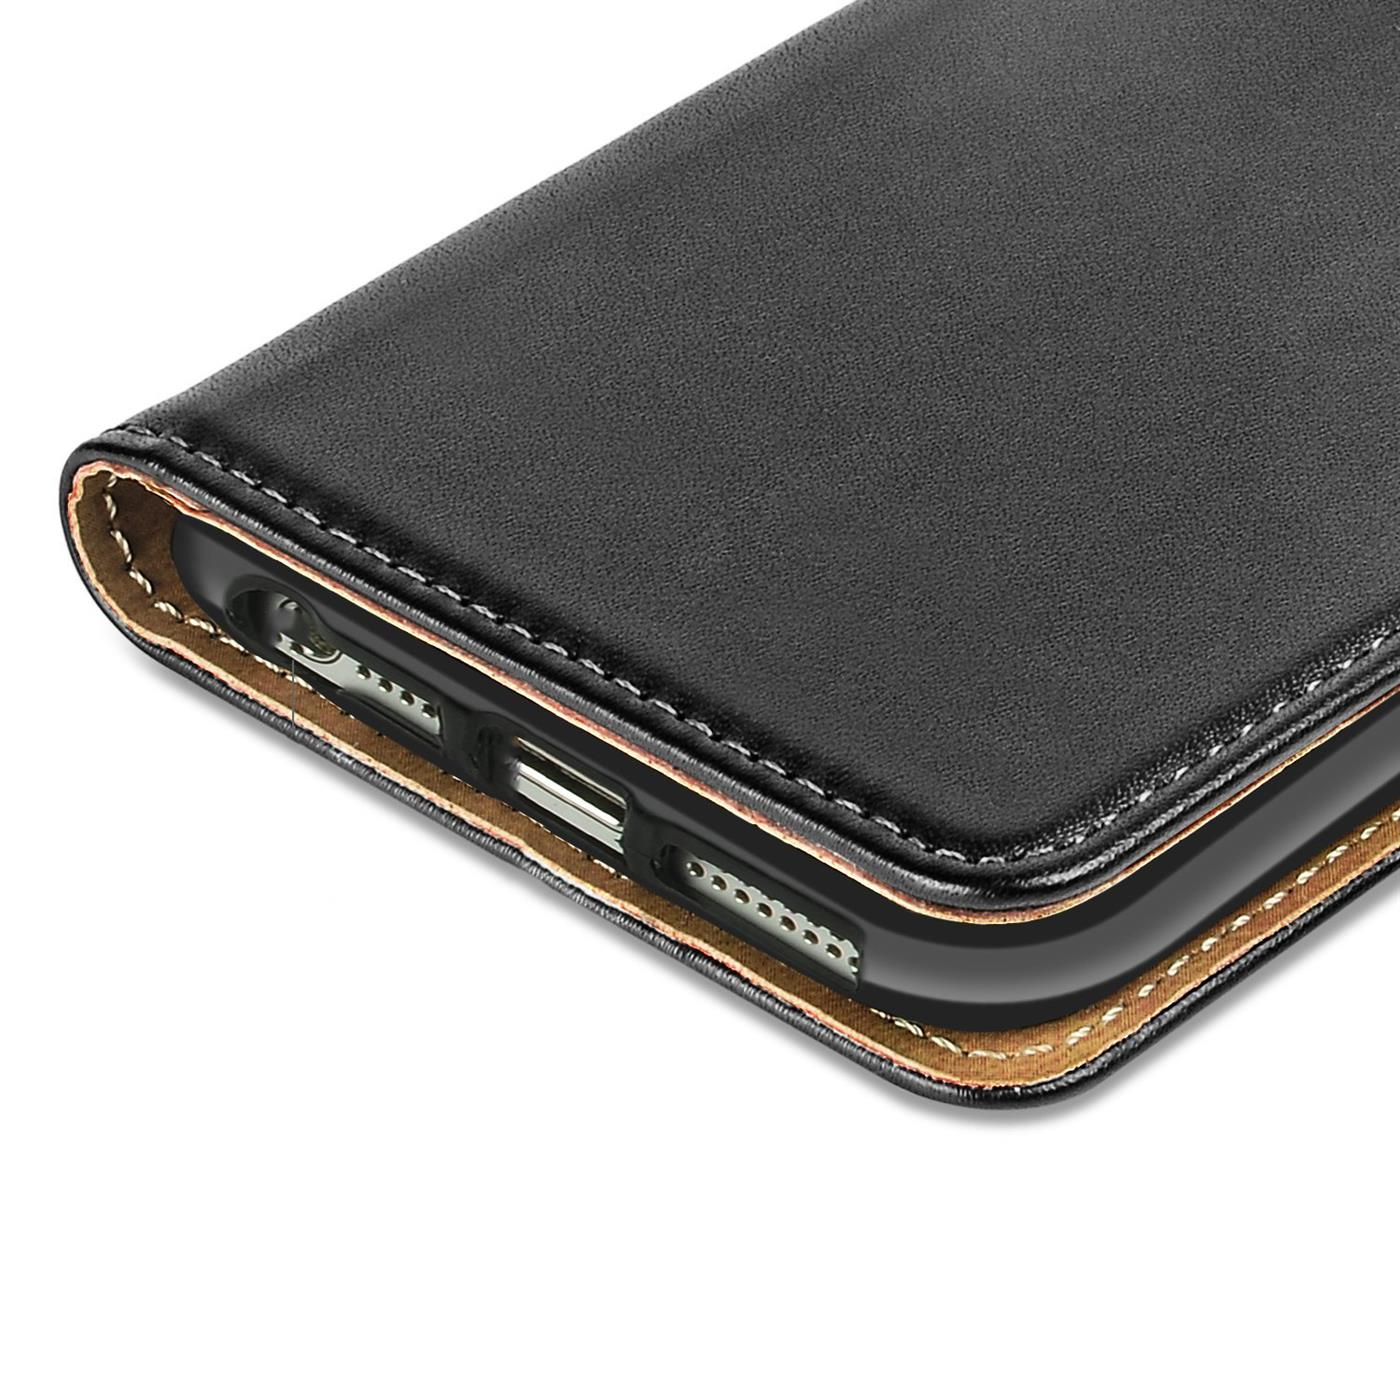 Case-Cover-Apple-iPhone-5-5S-SE-Magnetic-Flip-PU-Leather-Wallet-Holder-Shell-Bag thumbnail 5